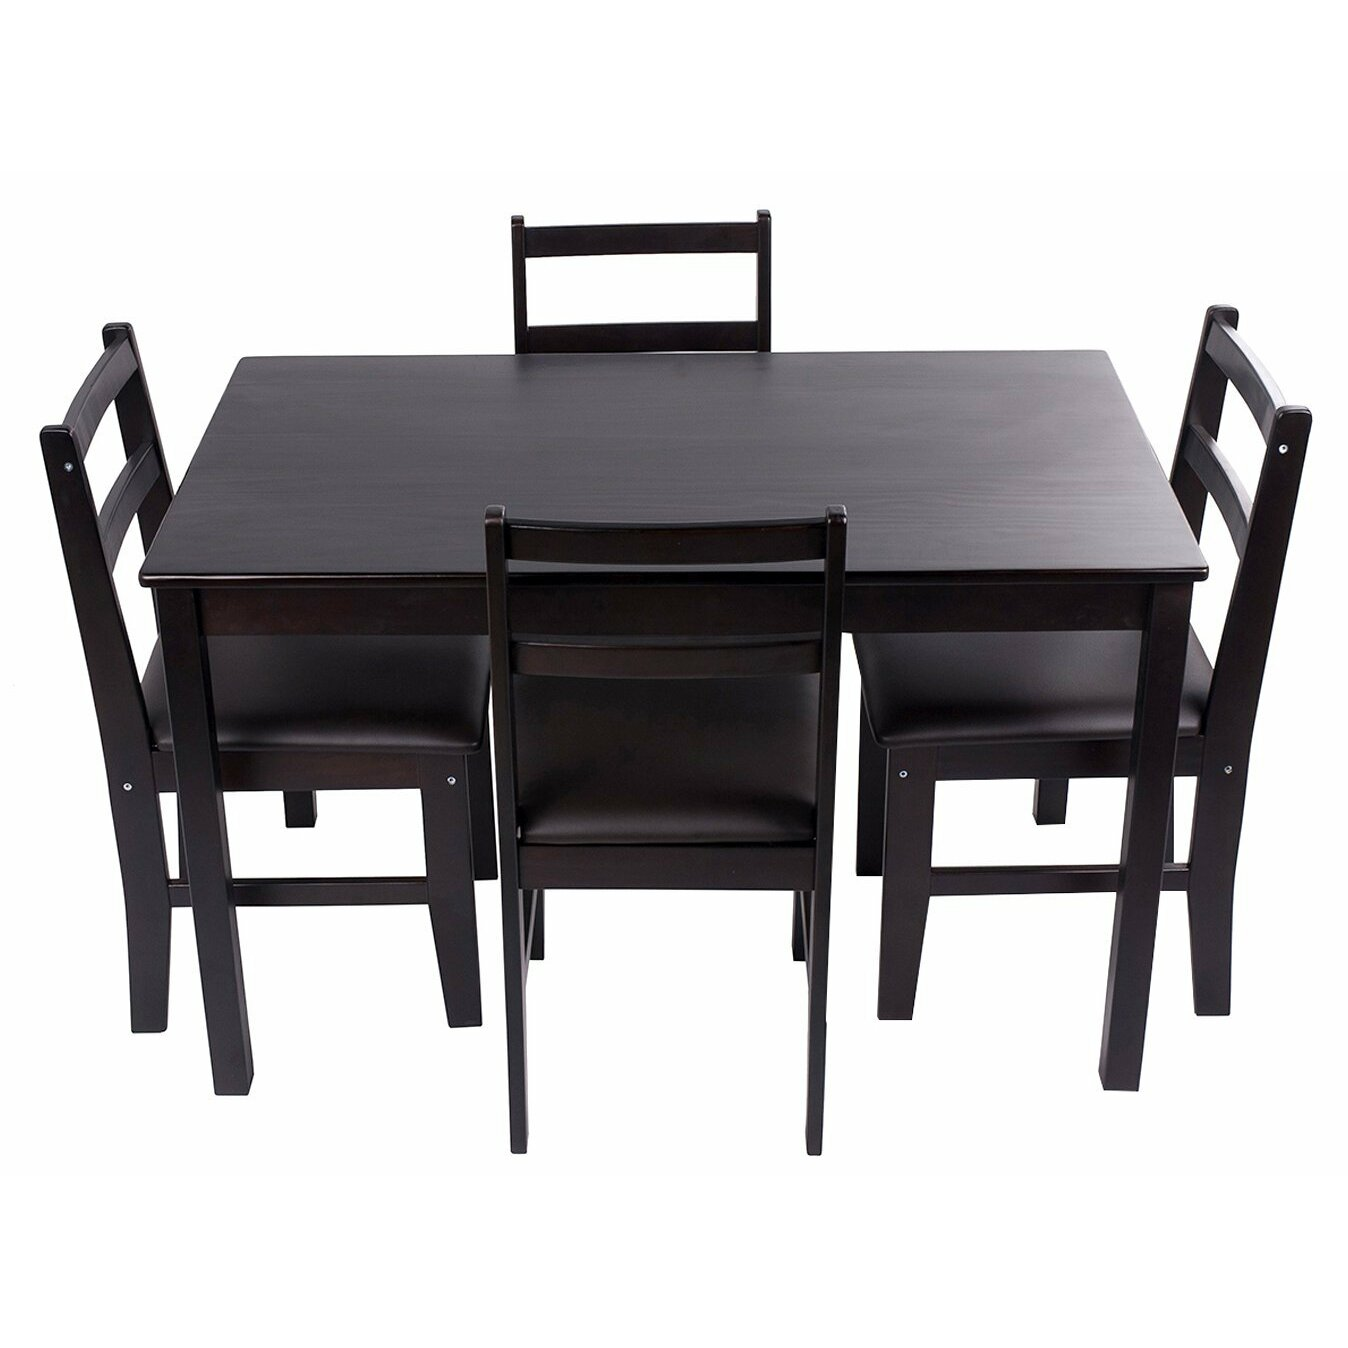 merax merax stylish 5 piece solid wood dining set reviews. Black Bedroom Furniture Sets. Home Design Ideas